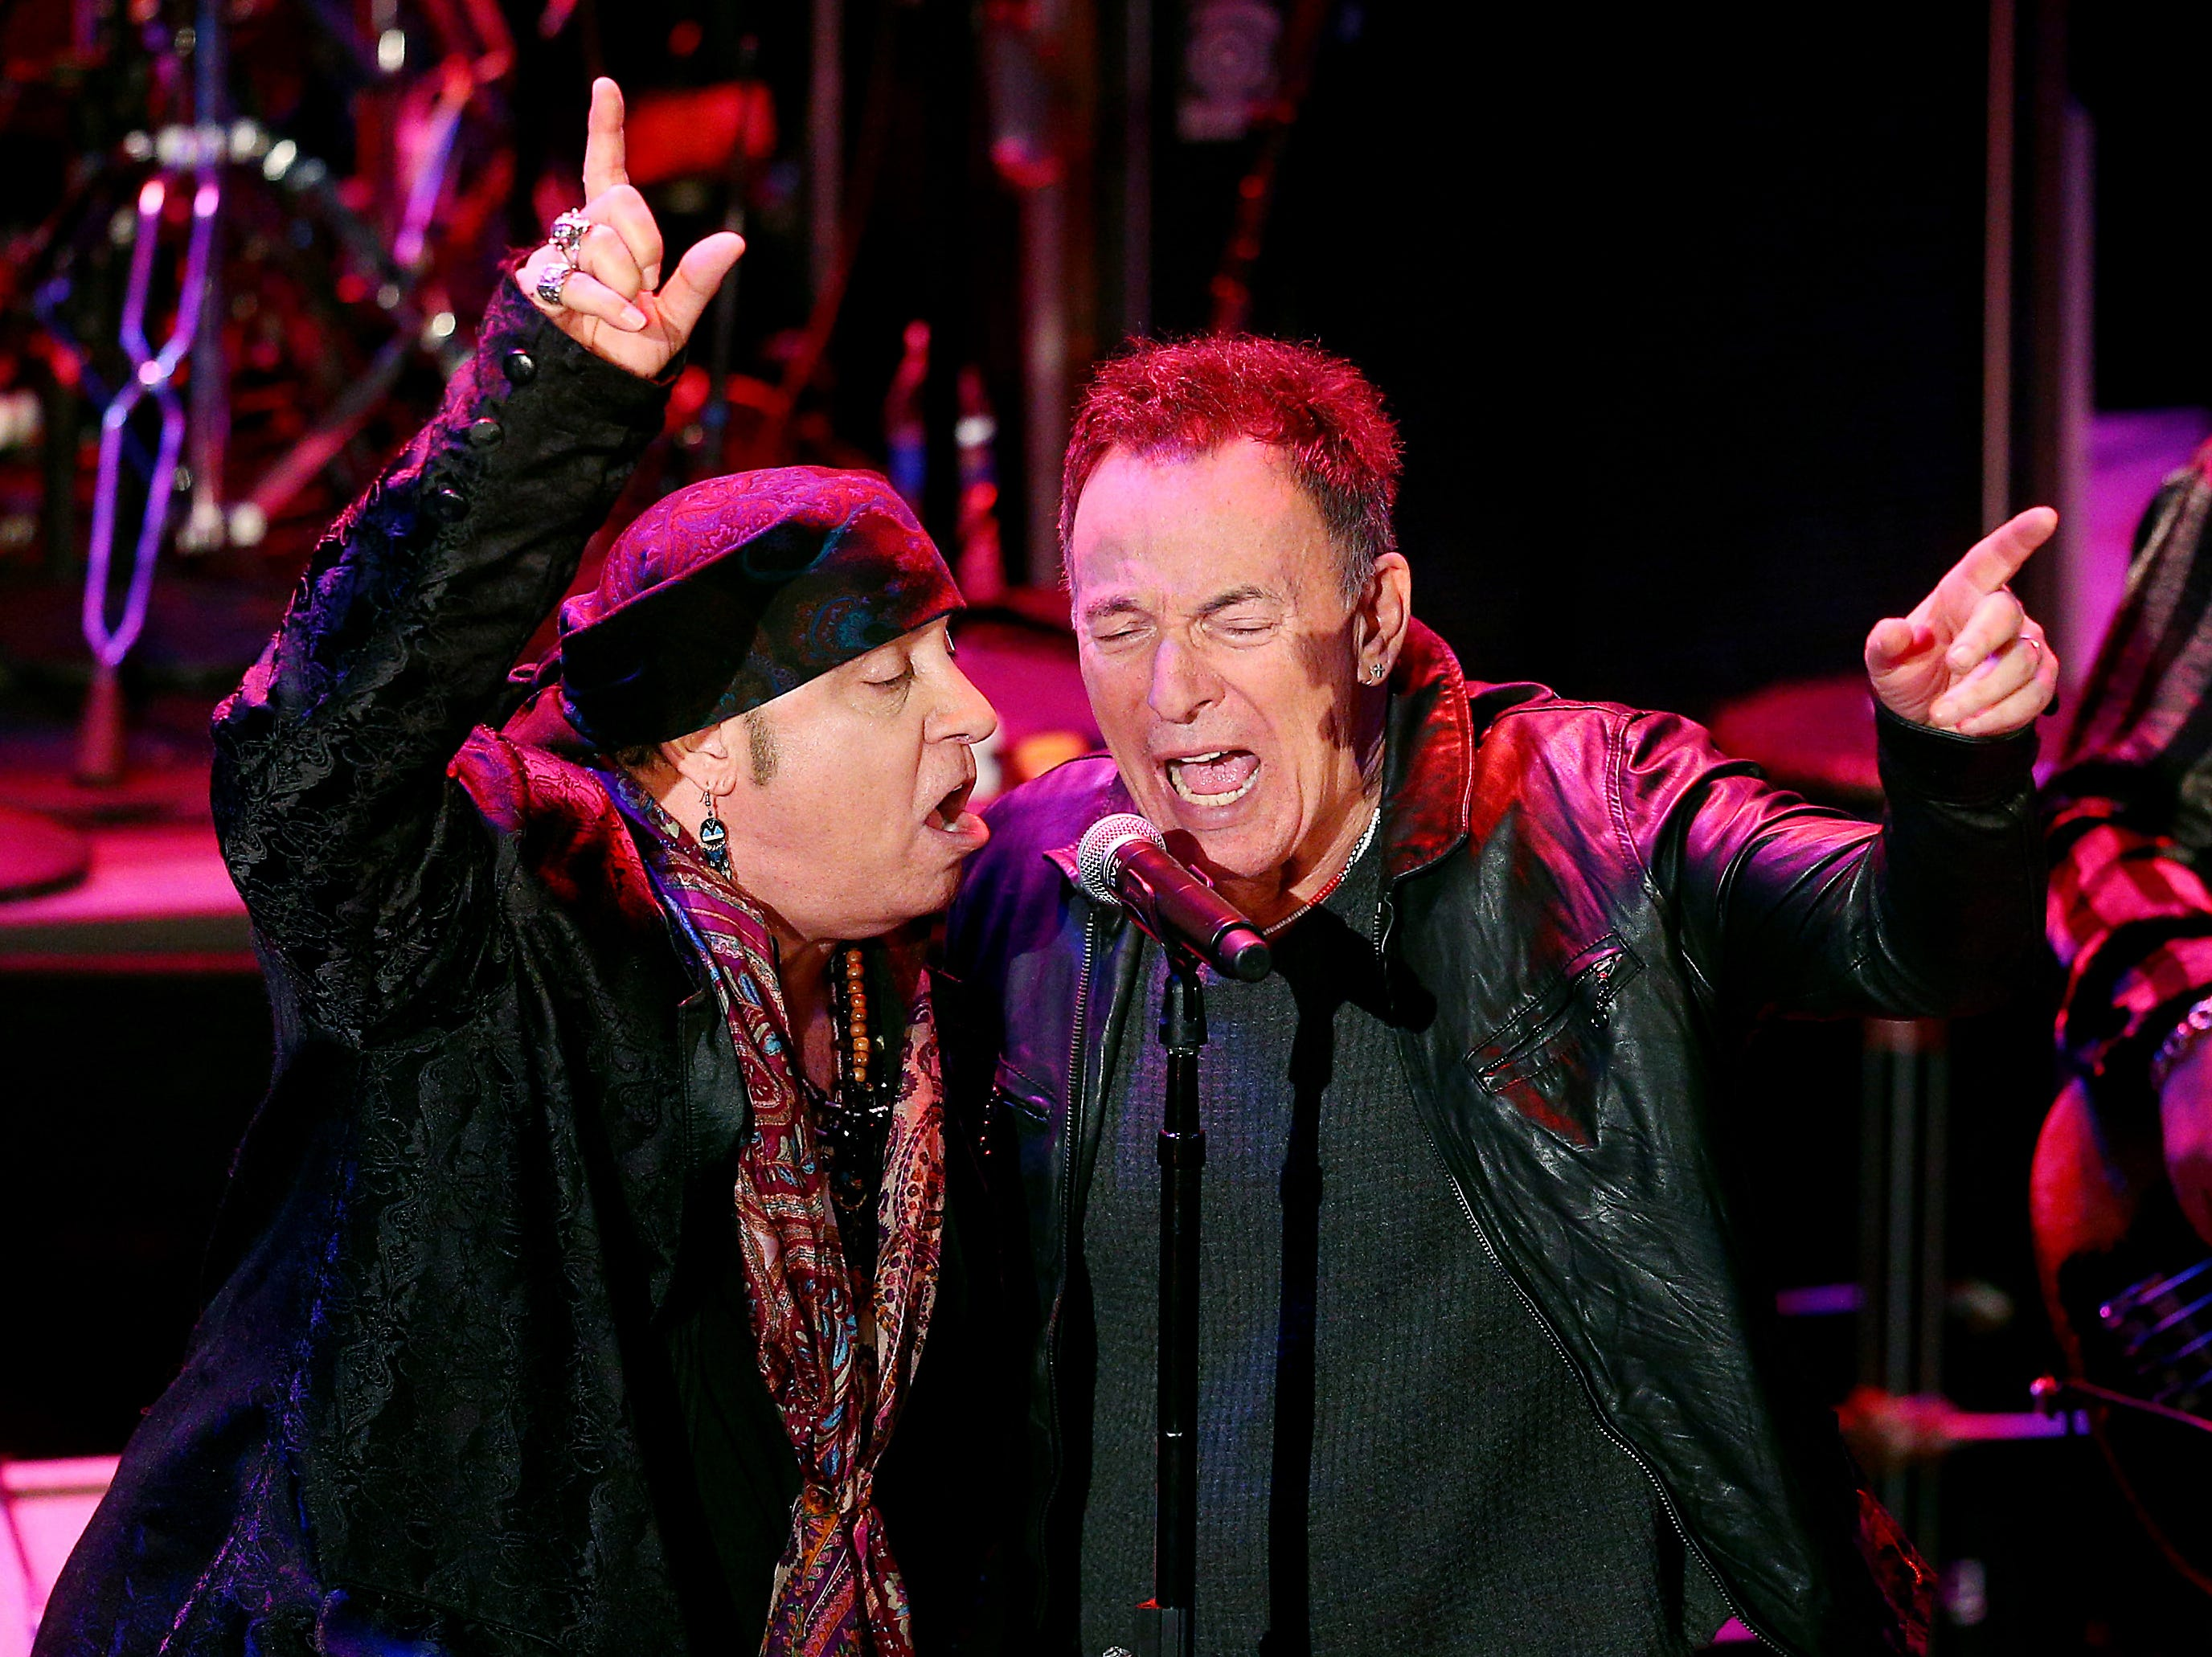 Musician and actor Steven Van Zandt and  Bruce Springsteen sing after Van Zandt received his Performing Arts award during the 10th Anniversary Induction Ceremony of the New Jersey Hall of Fame at the Paramount Theater in Convention Hall, Asbury Park. May 6, 2018. Asbury Park, NJ